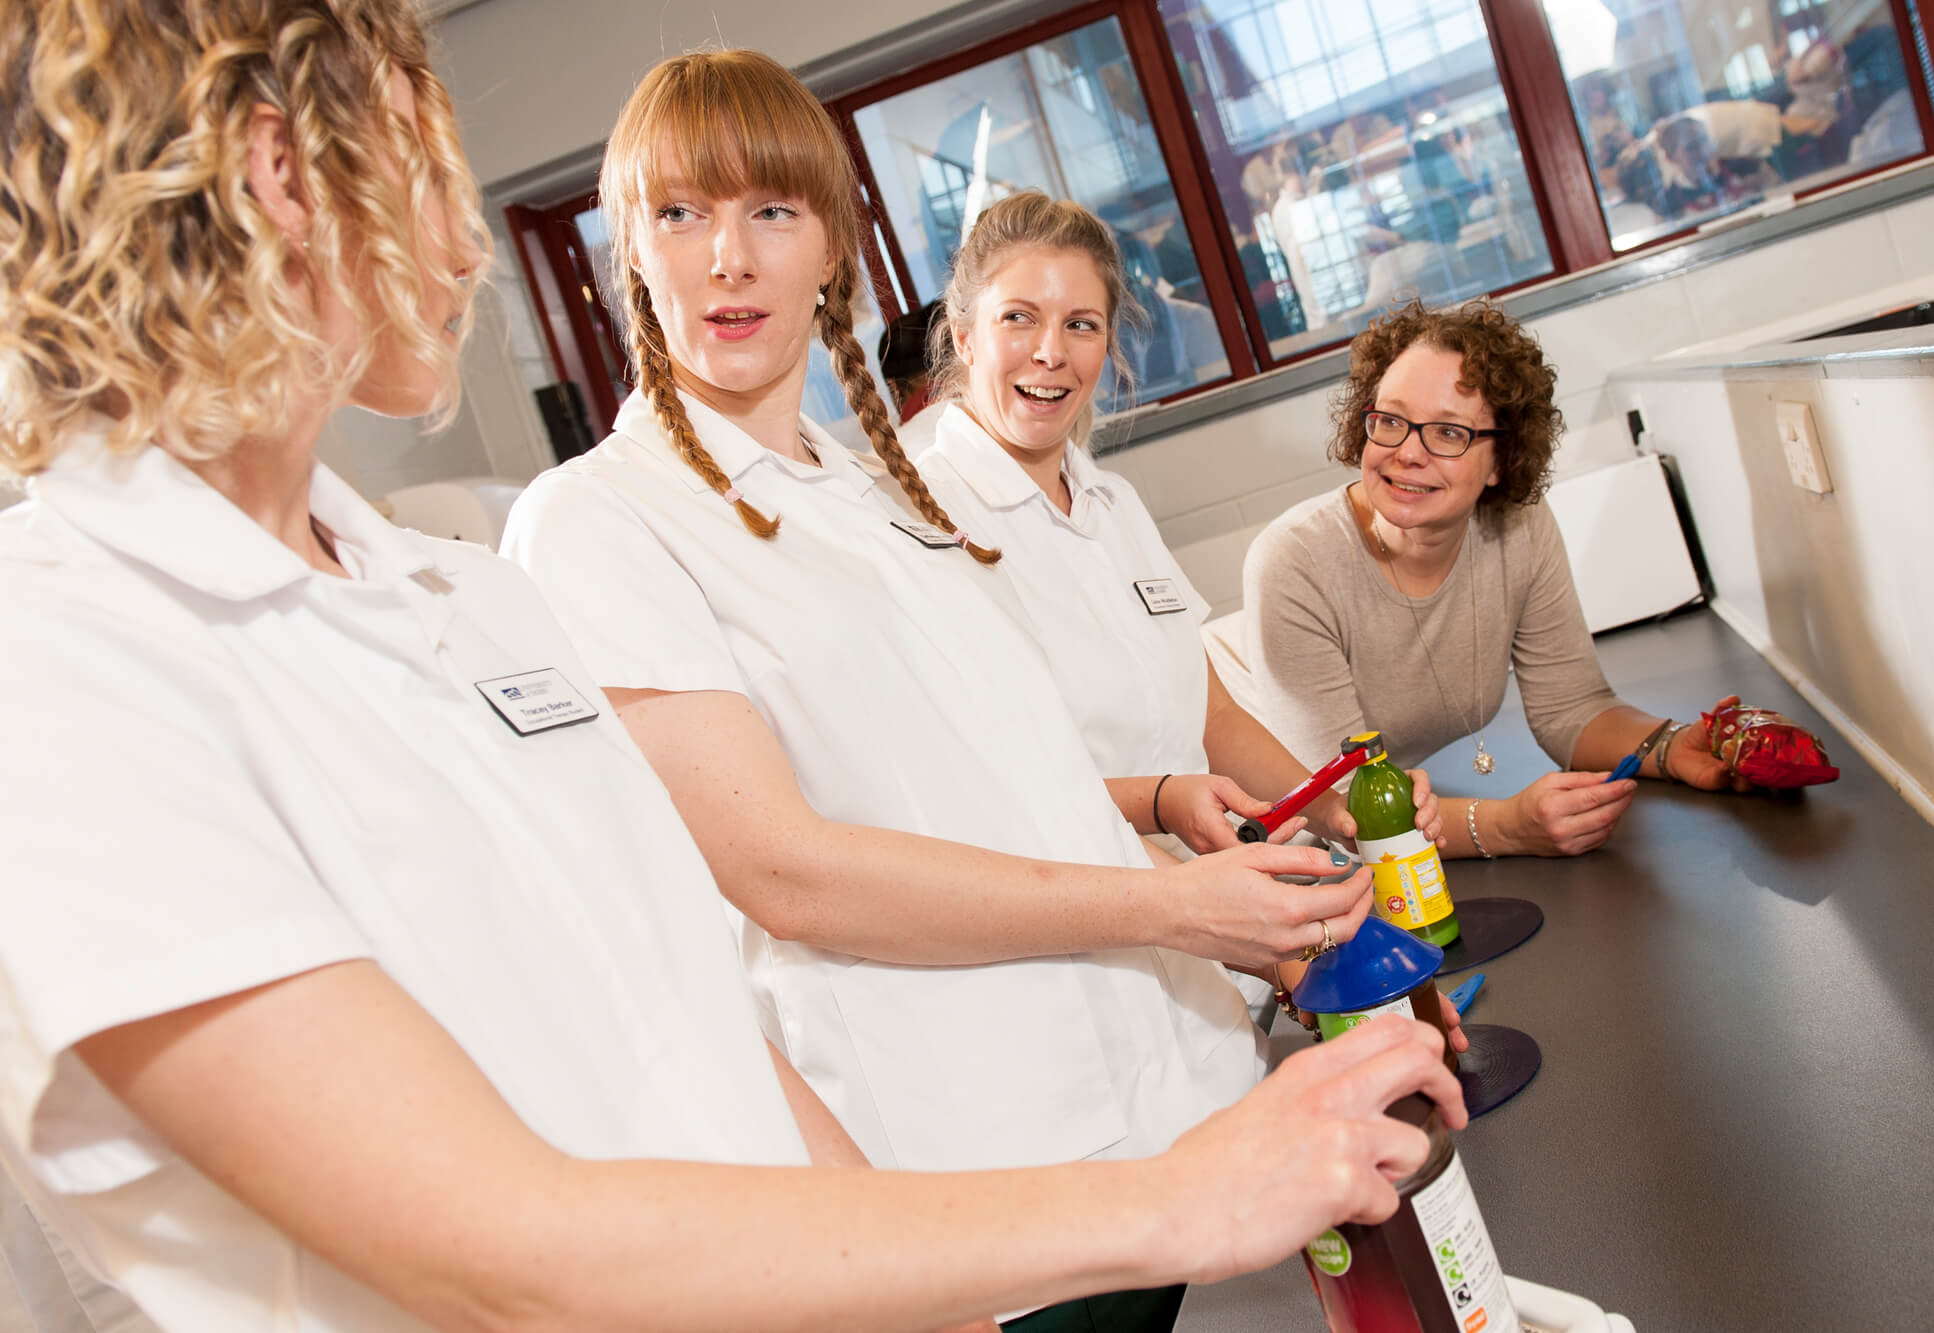 Students and lecturer in the rehabilitation kitchen during a class